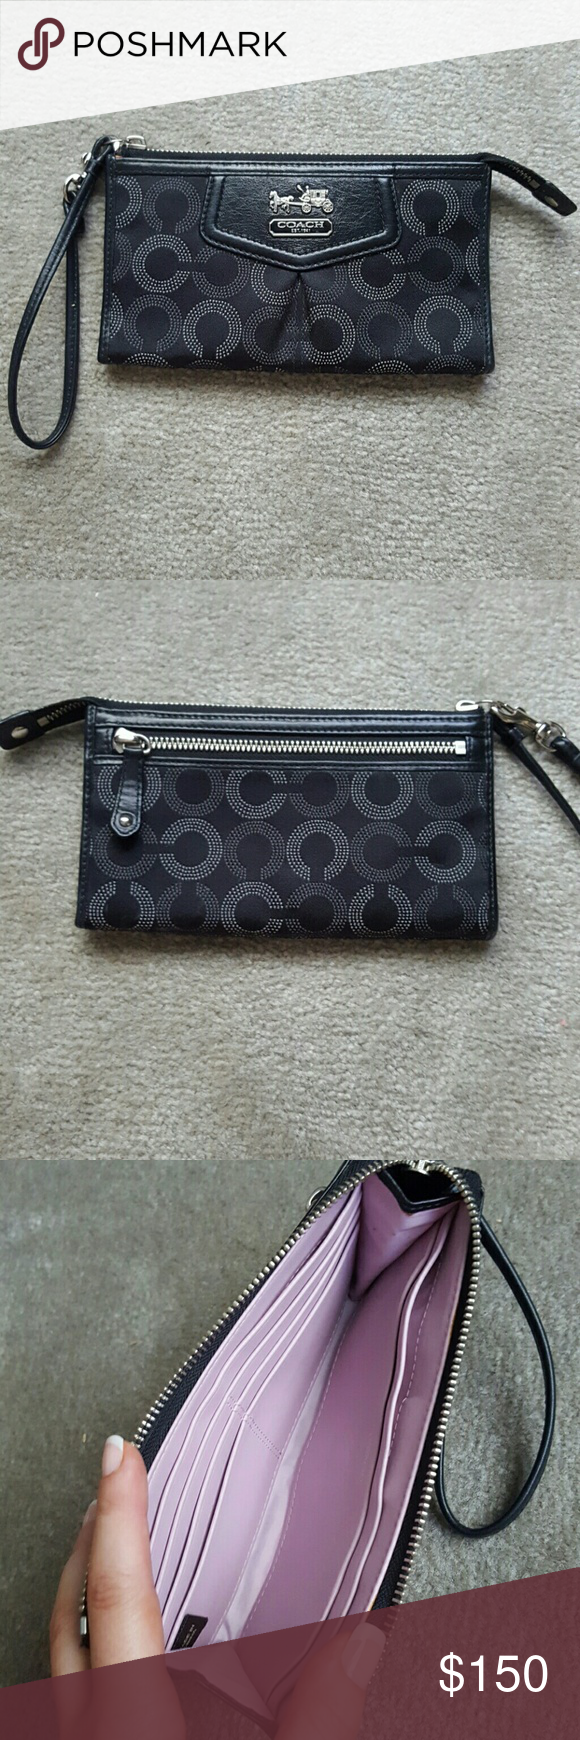 NEW! Coach Signature Wristlet BRAND NEW! PERFECT CONDITION! Black Coach Signature Wristlet with beautiful Pink interior lining. Wristlet Wallet - Zipper on back - Plenty of room inside for all of your money, cards, etc. No trades. Coach Bags Clutches & Wristlets